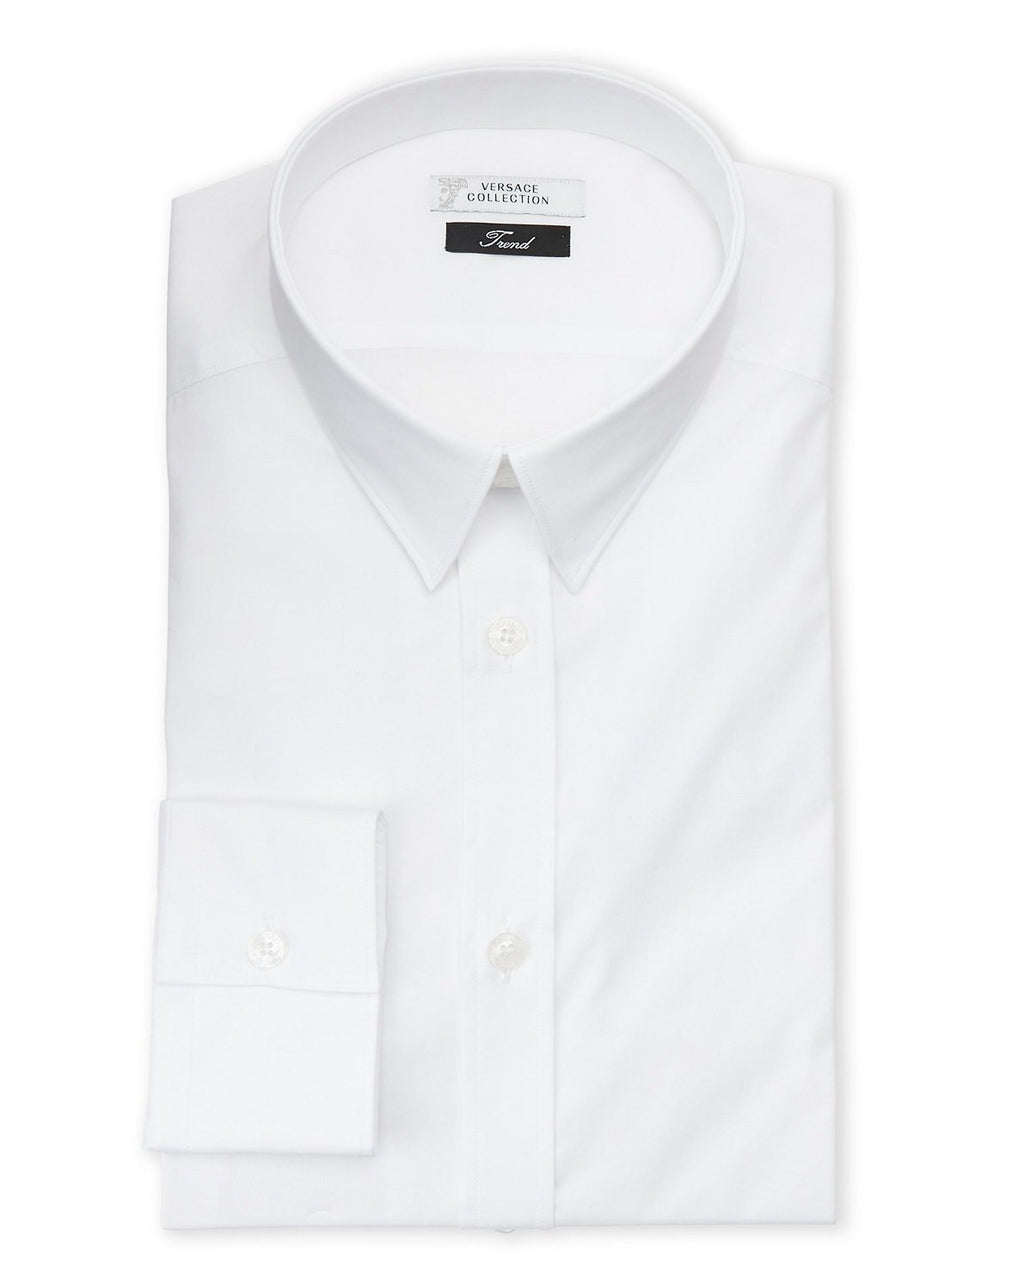 Versace Collection City Fit Dress Shirt, White